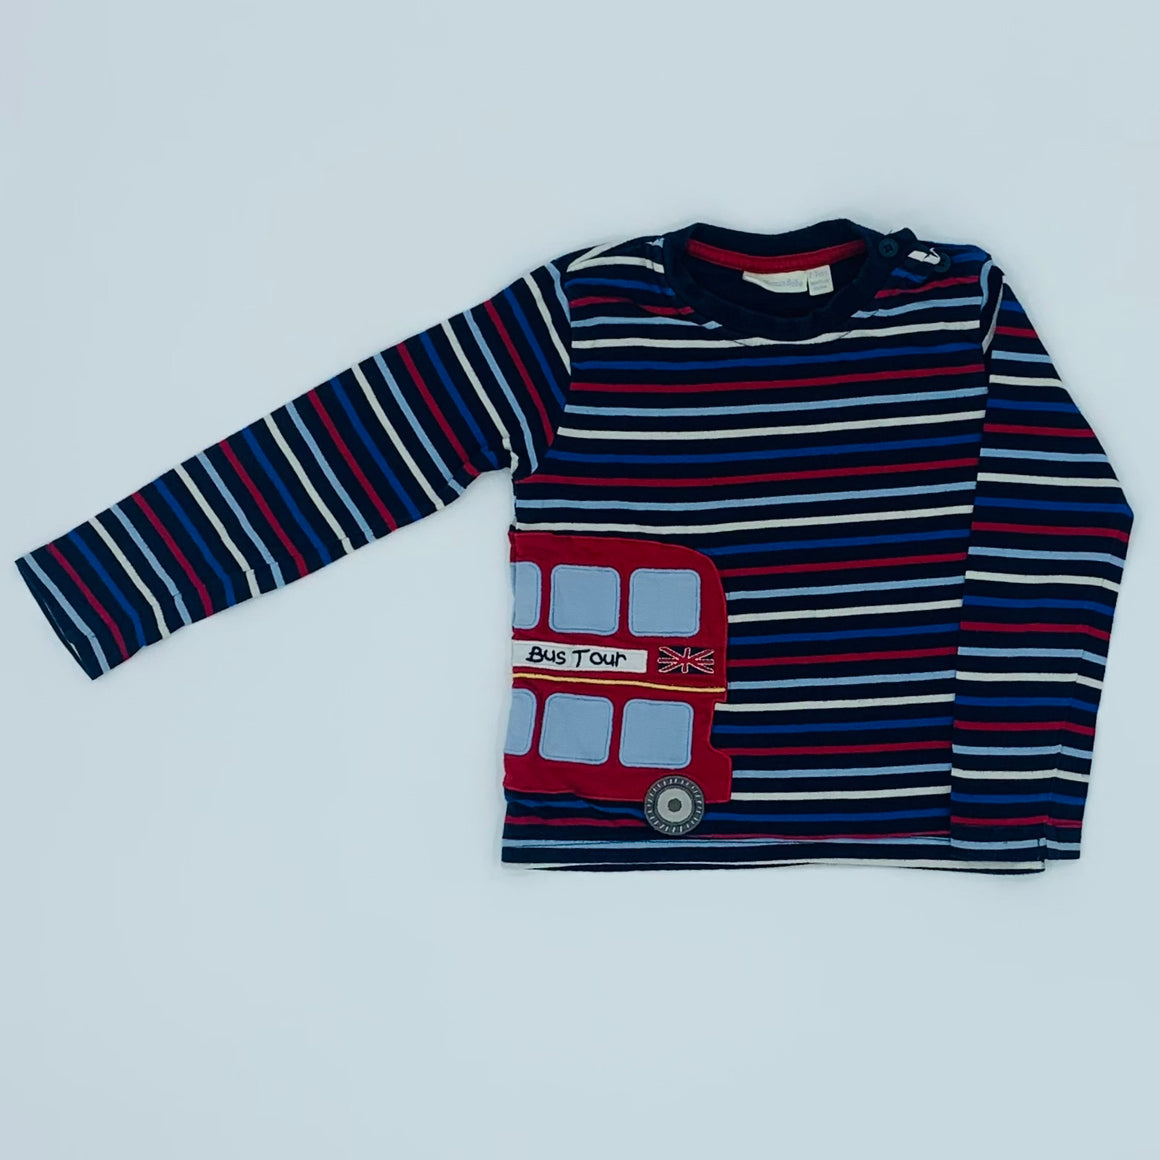 Gently Worn Jojo Maman Bebe striped London top size 2-3 years